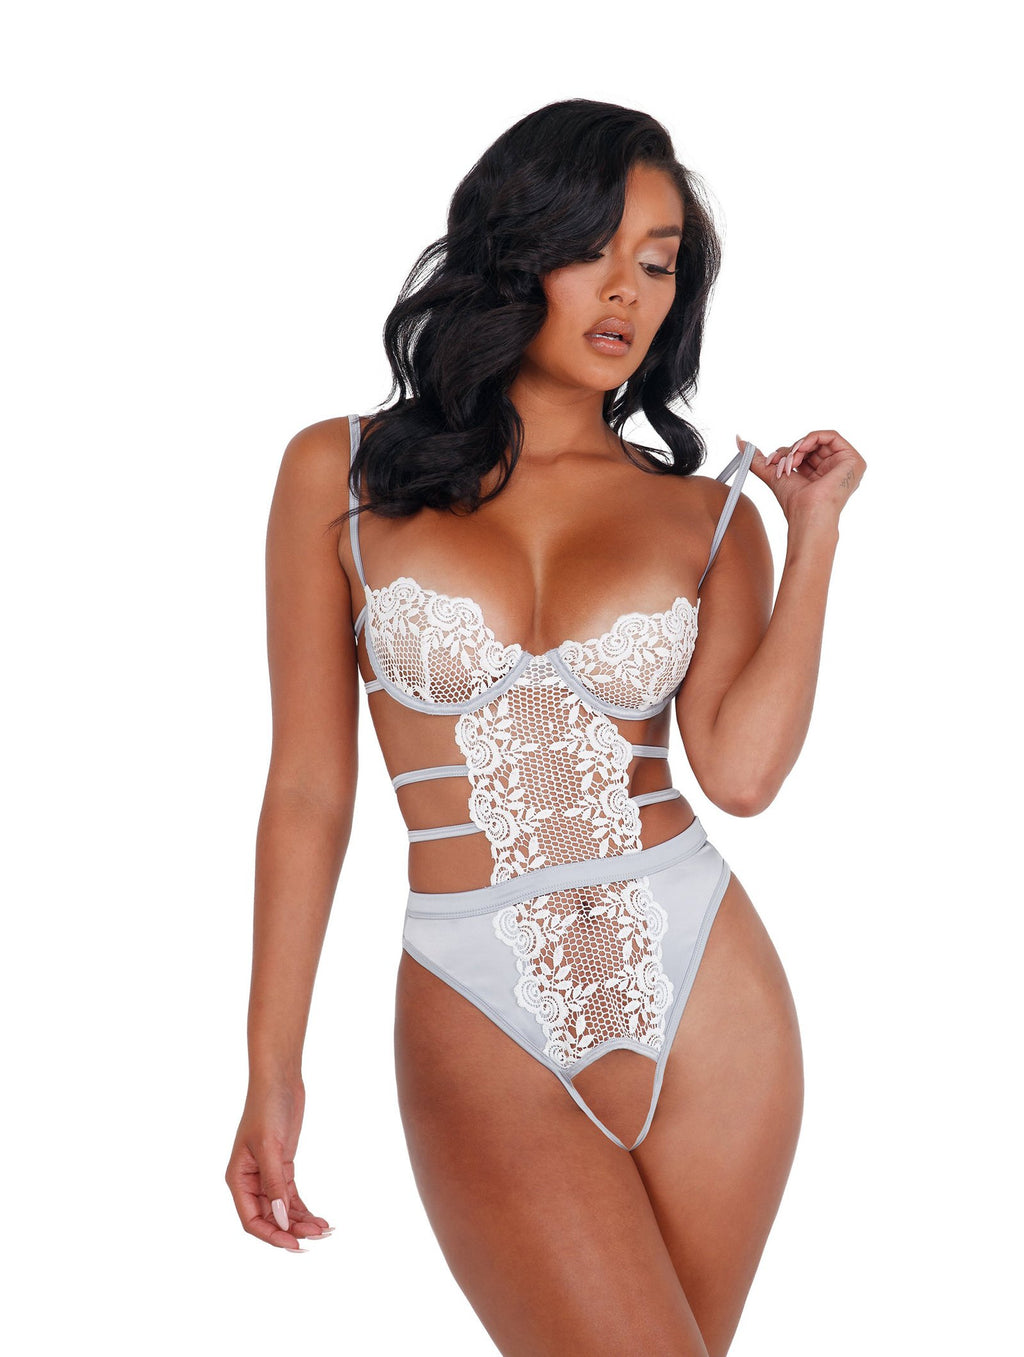 Roma Confidential LI405 - 1pc Embroidered Lace & Satin Crotchless Teddy-Bodysuits & Teddies-Roma-Small-Silver/White-Unspoken Fashion